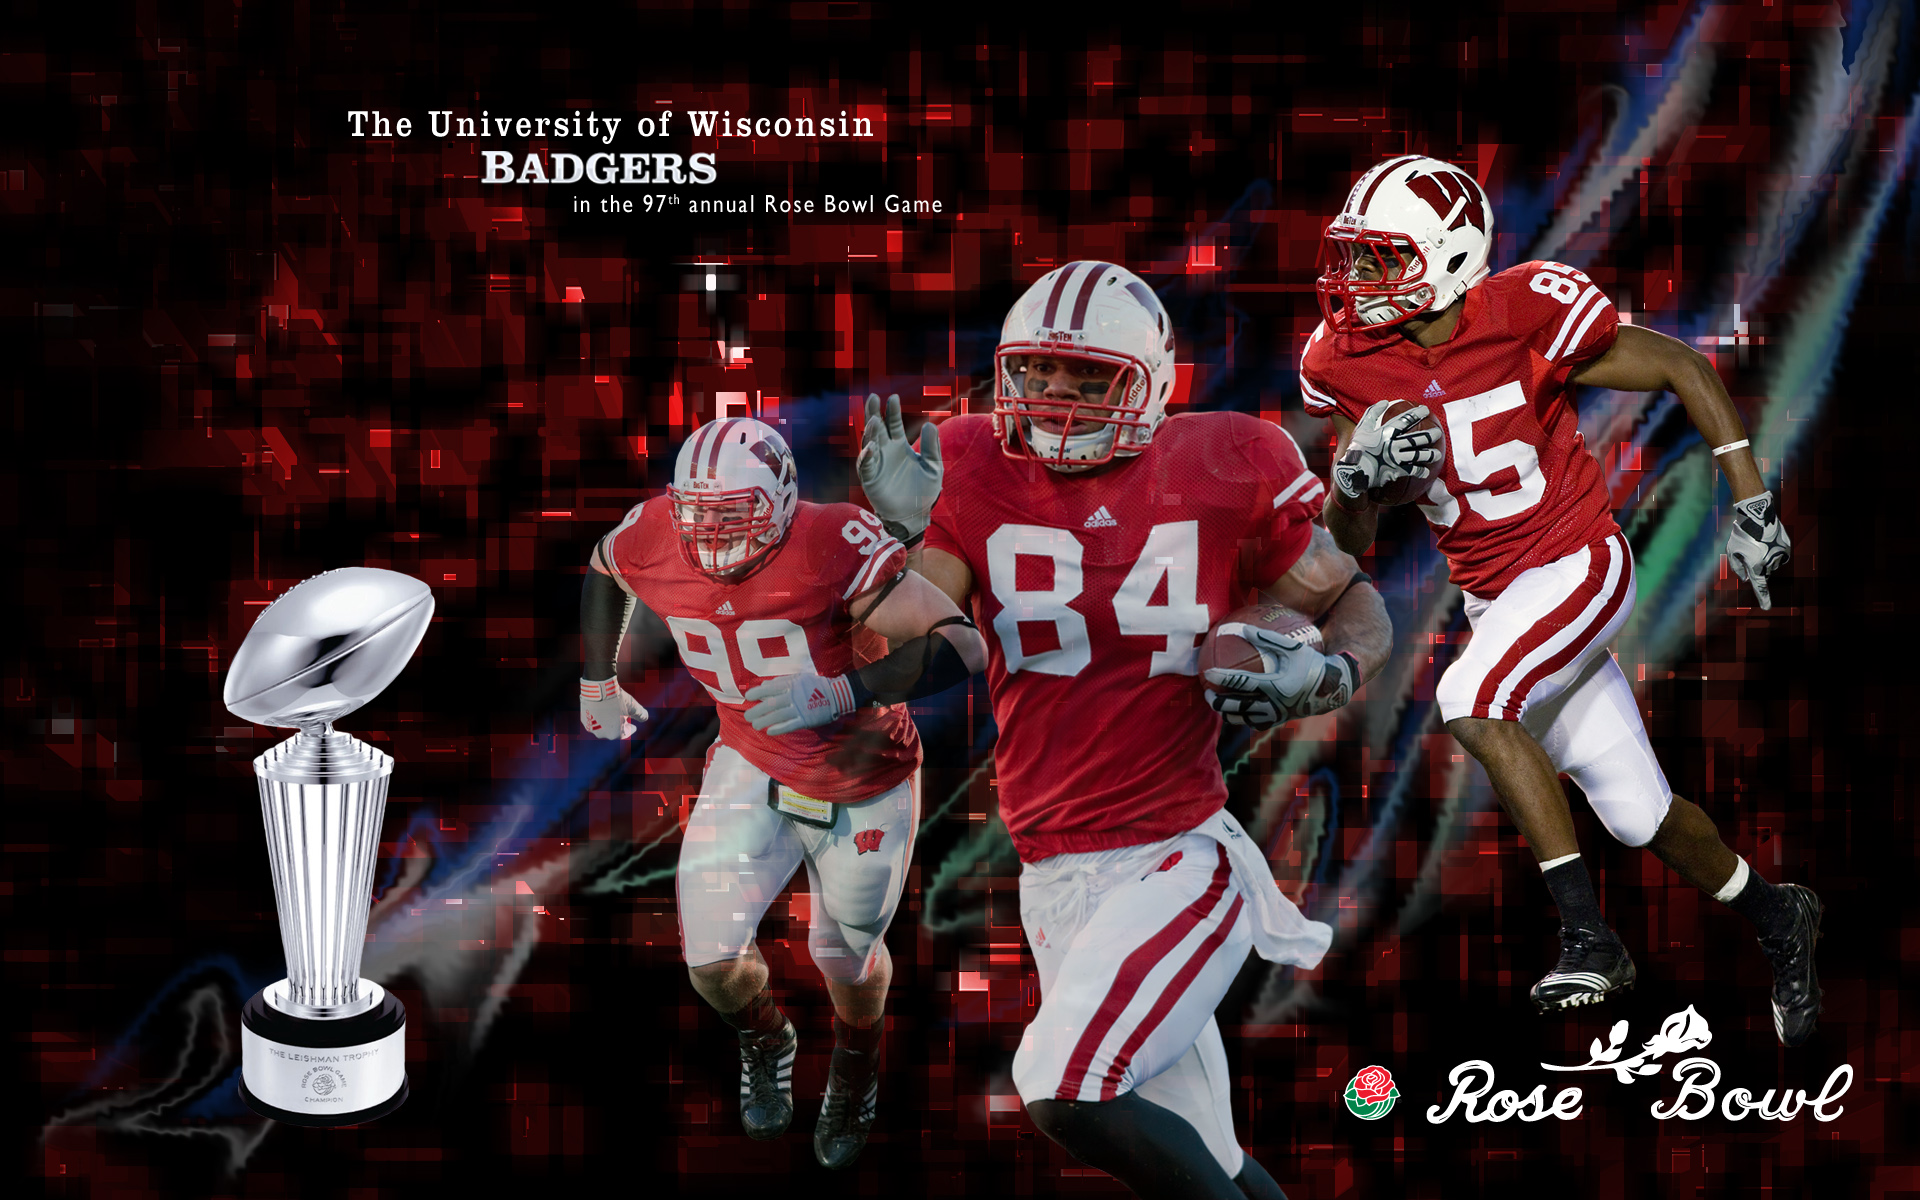 Wisconsin Badgers Desktop Wallpaper Rose bowl hd wallpaper 1920x1200